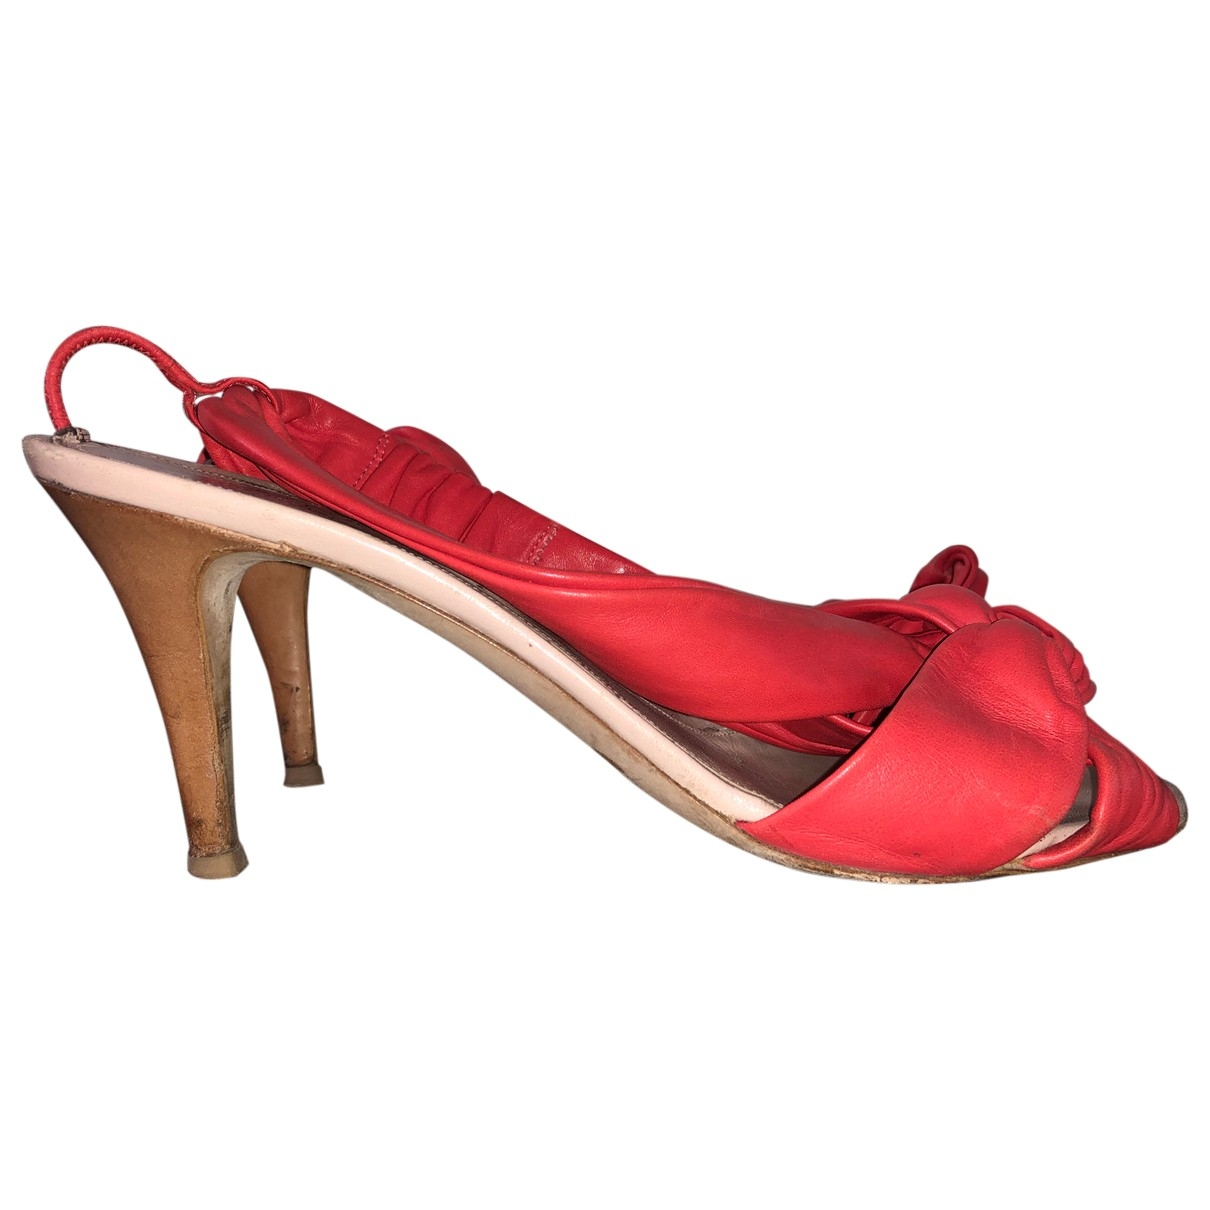 Sergio Rossi \N Red Leather Sandals for Women 39.5 EU